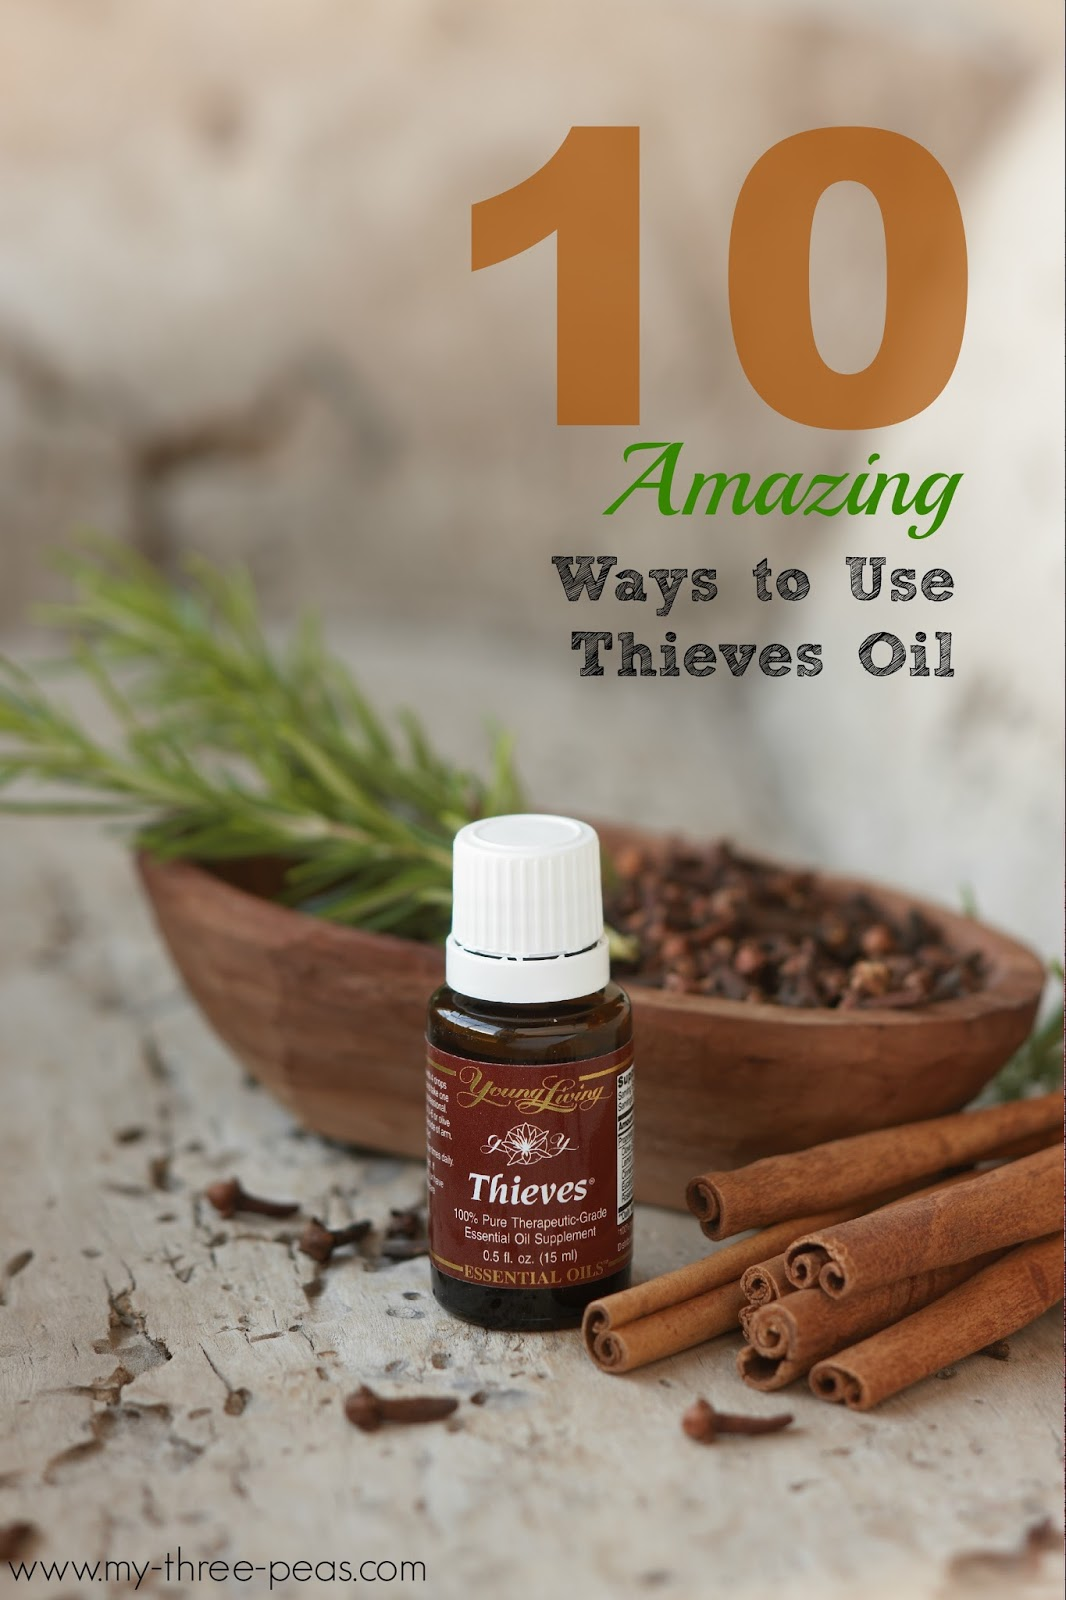 Amazing Ways to use Thieves Oil